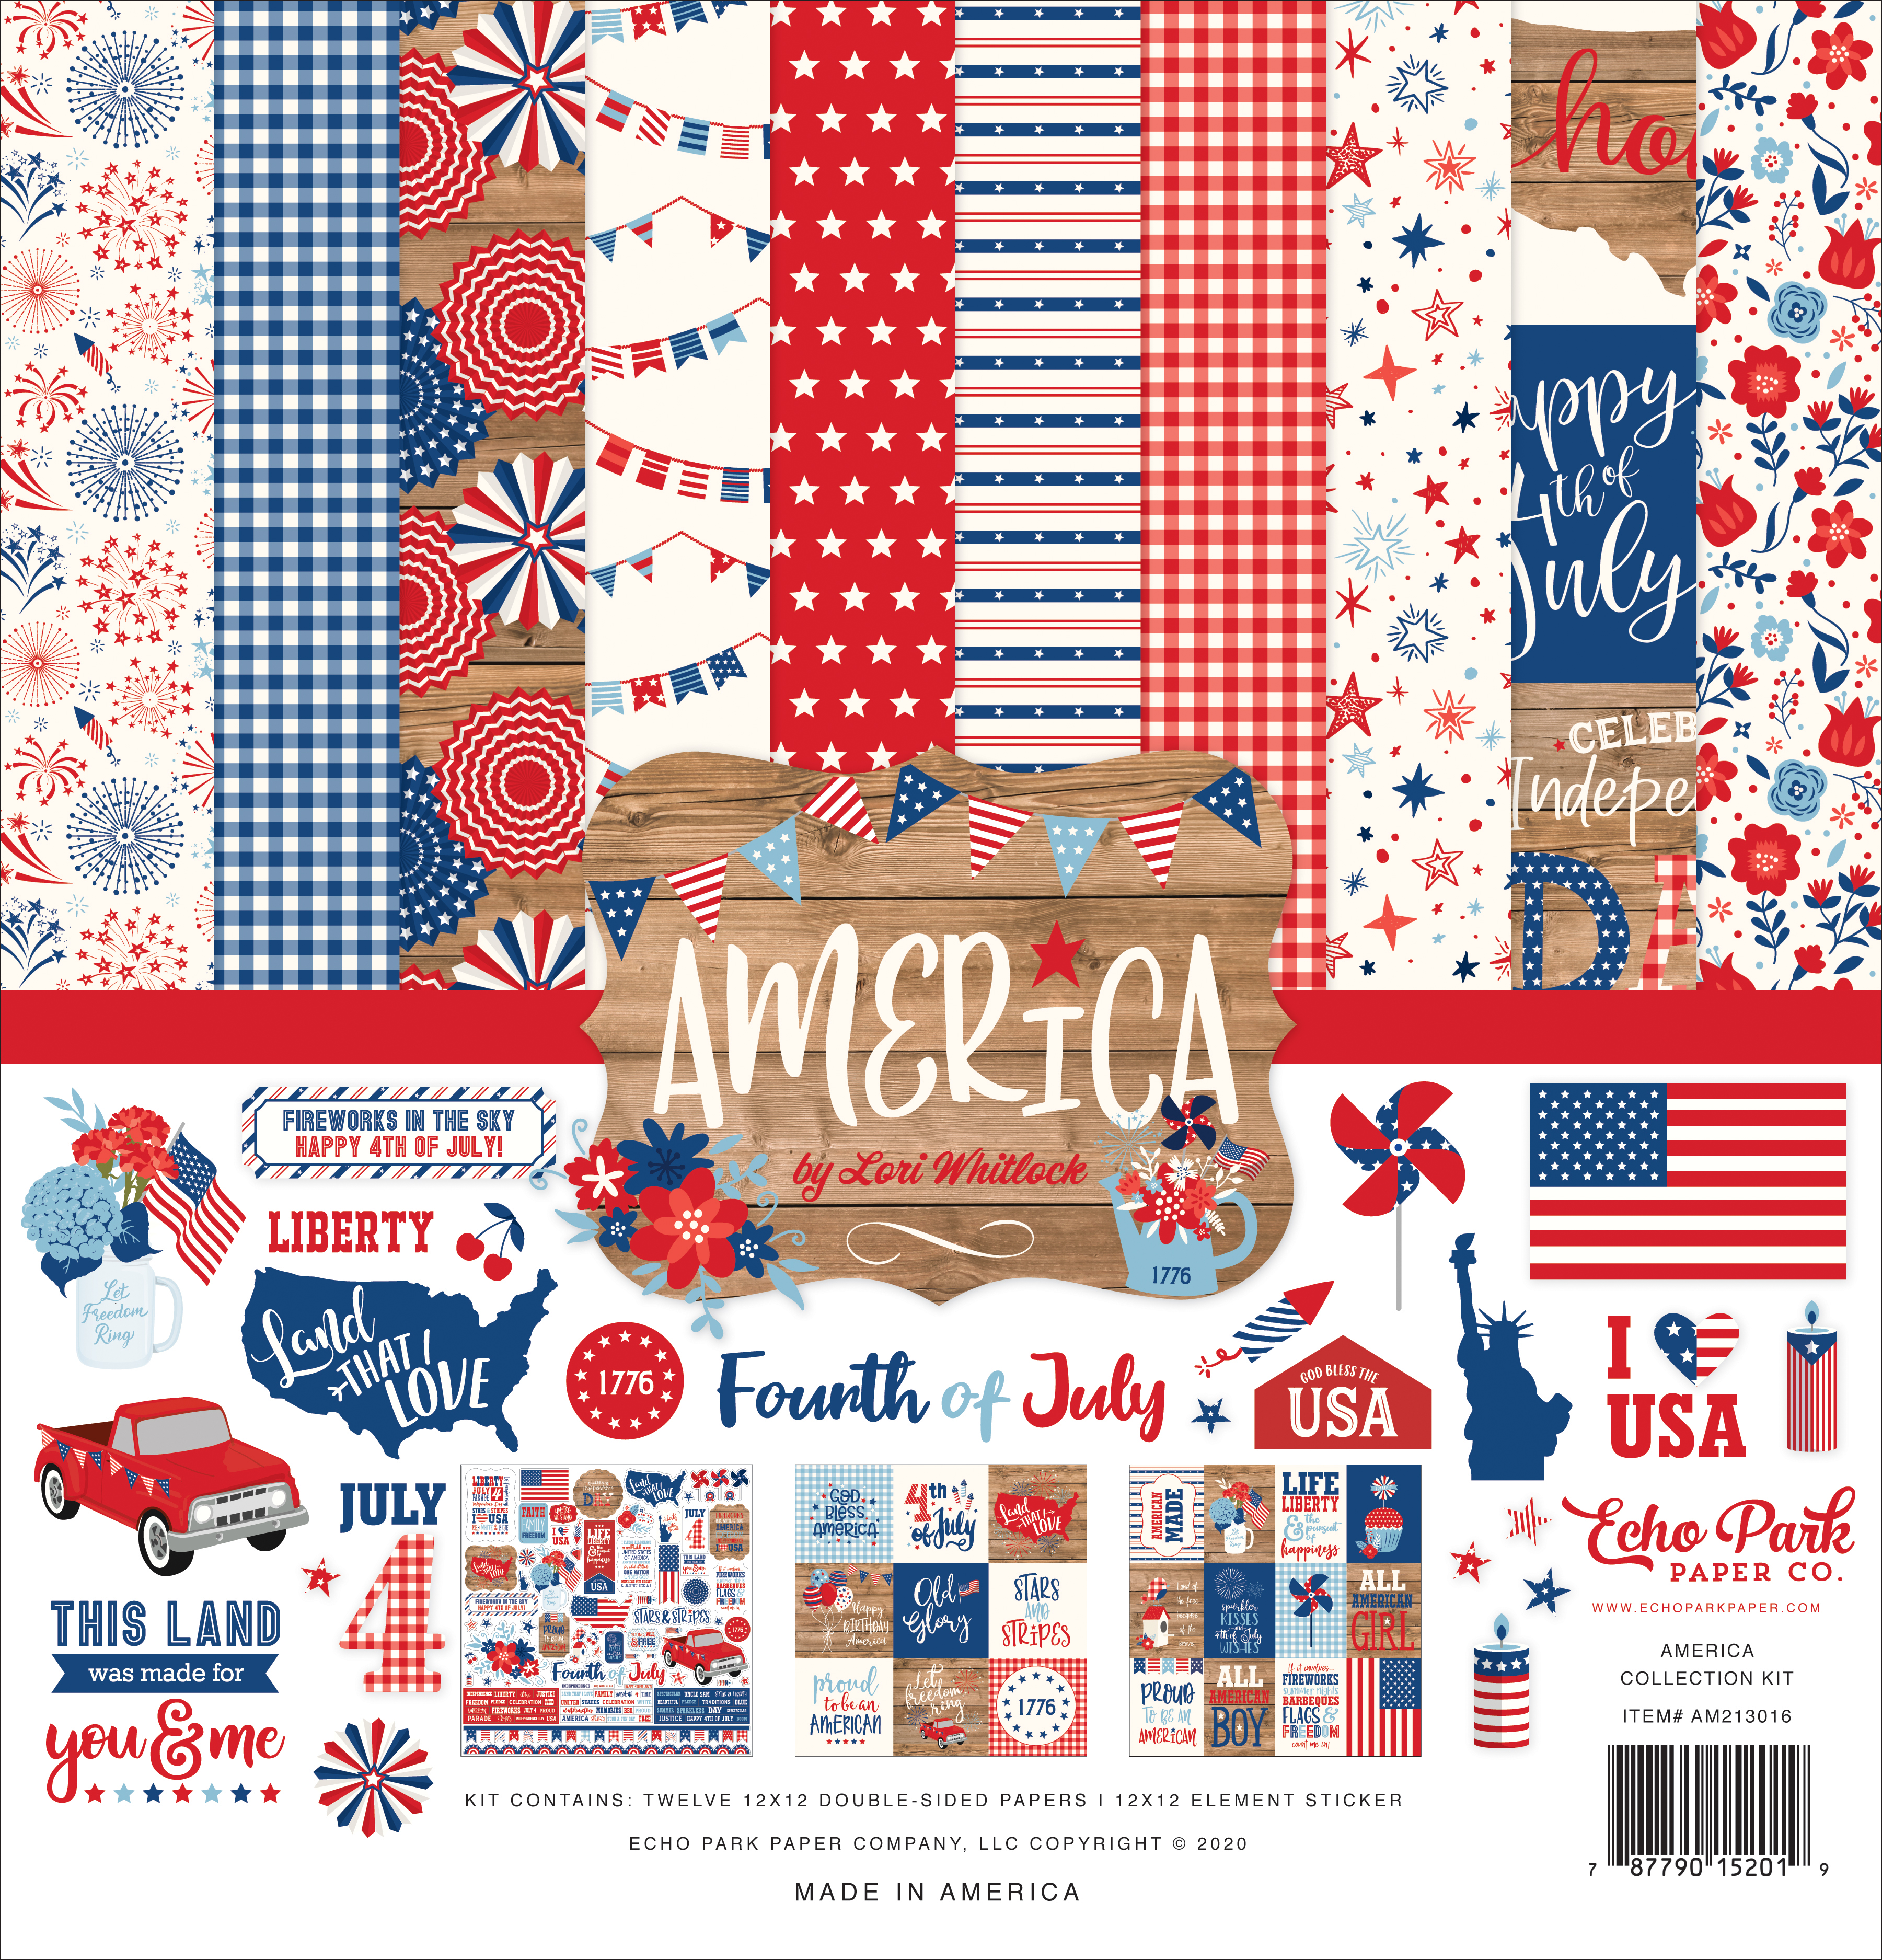 America Collection Kit